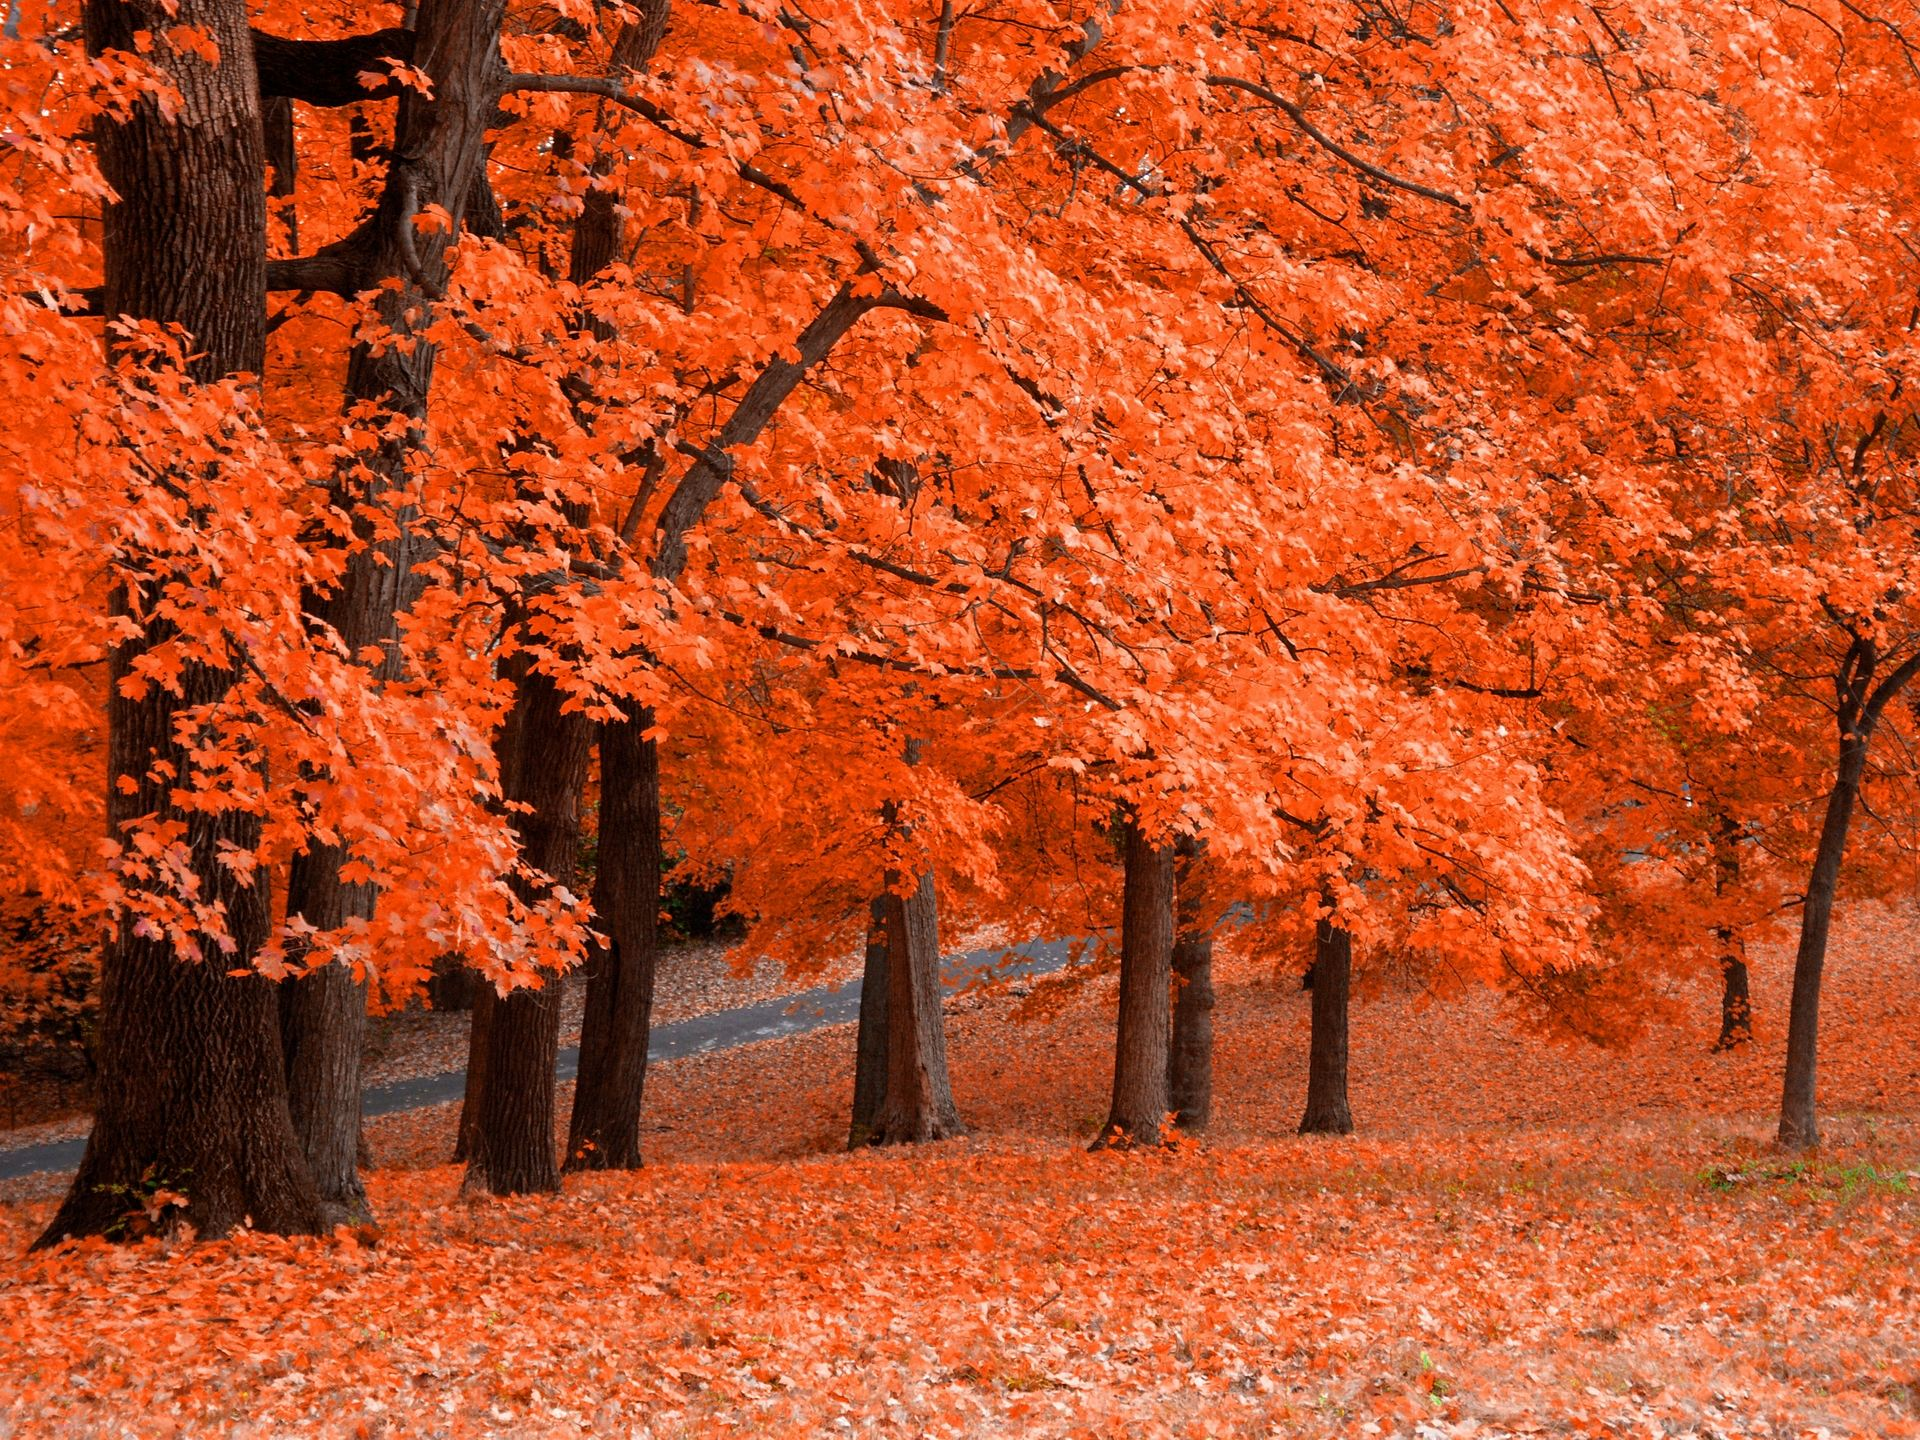 Free Download Google Chrome Themes Autumn Trees Theme 1920x1440 For Your Desktop Mobile Tablet Explore 73 Fall Themed Backgrounds Fall Themed Wallpaper Fall Themed Backgrounds Fall Themed Wallpaper Desktop